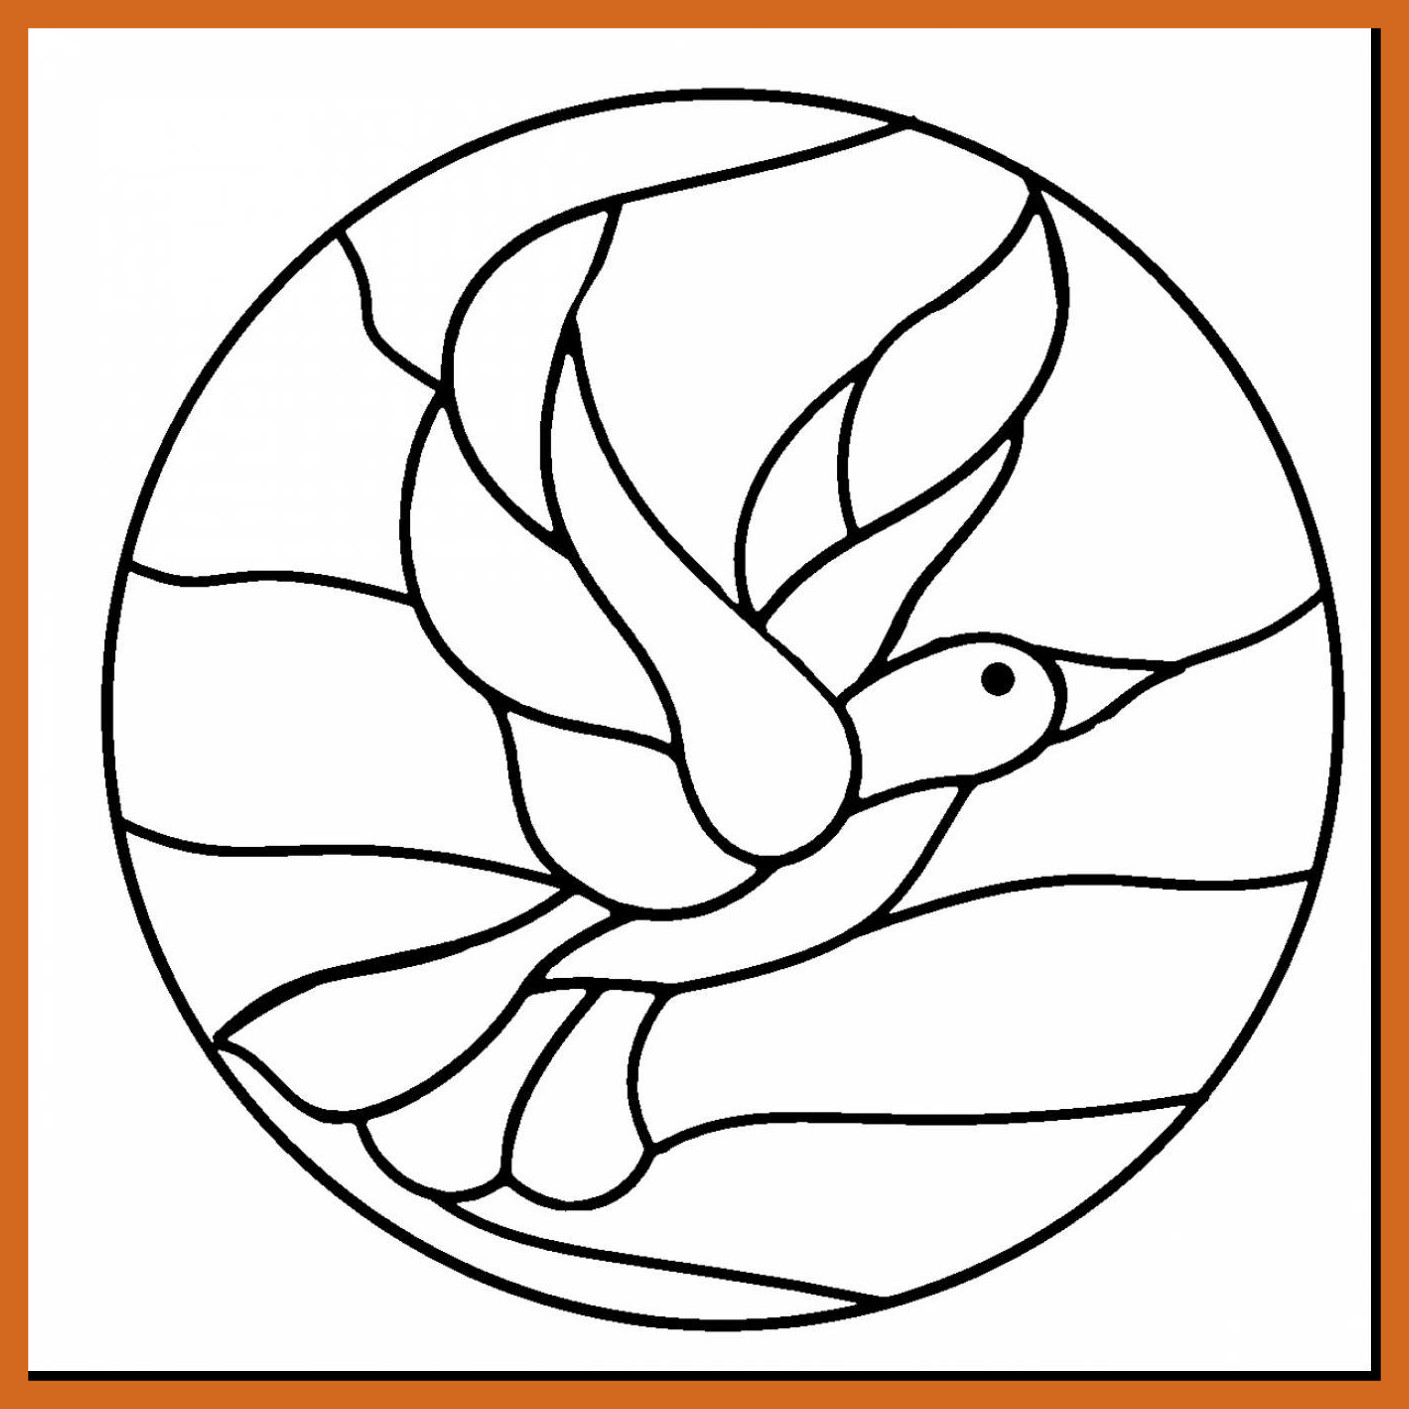 1409x1409 Stunning Rose Window Coloring Page With Stained Glass Of Style